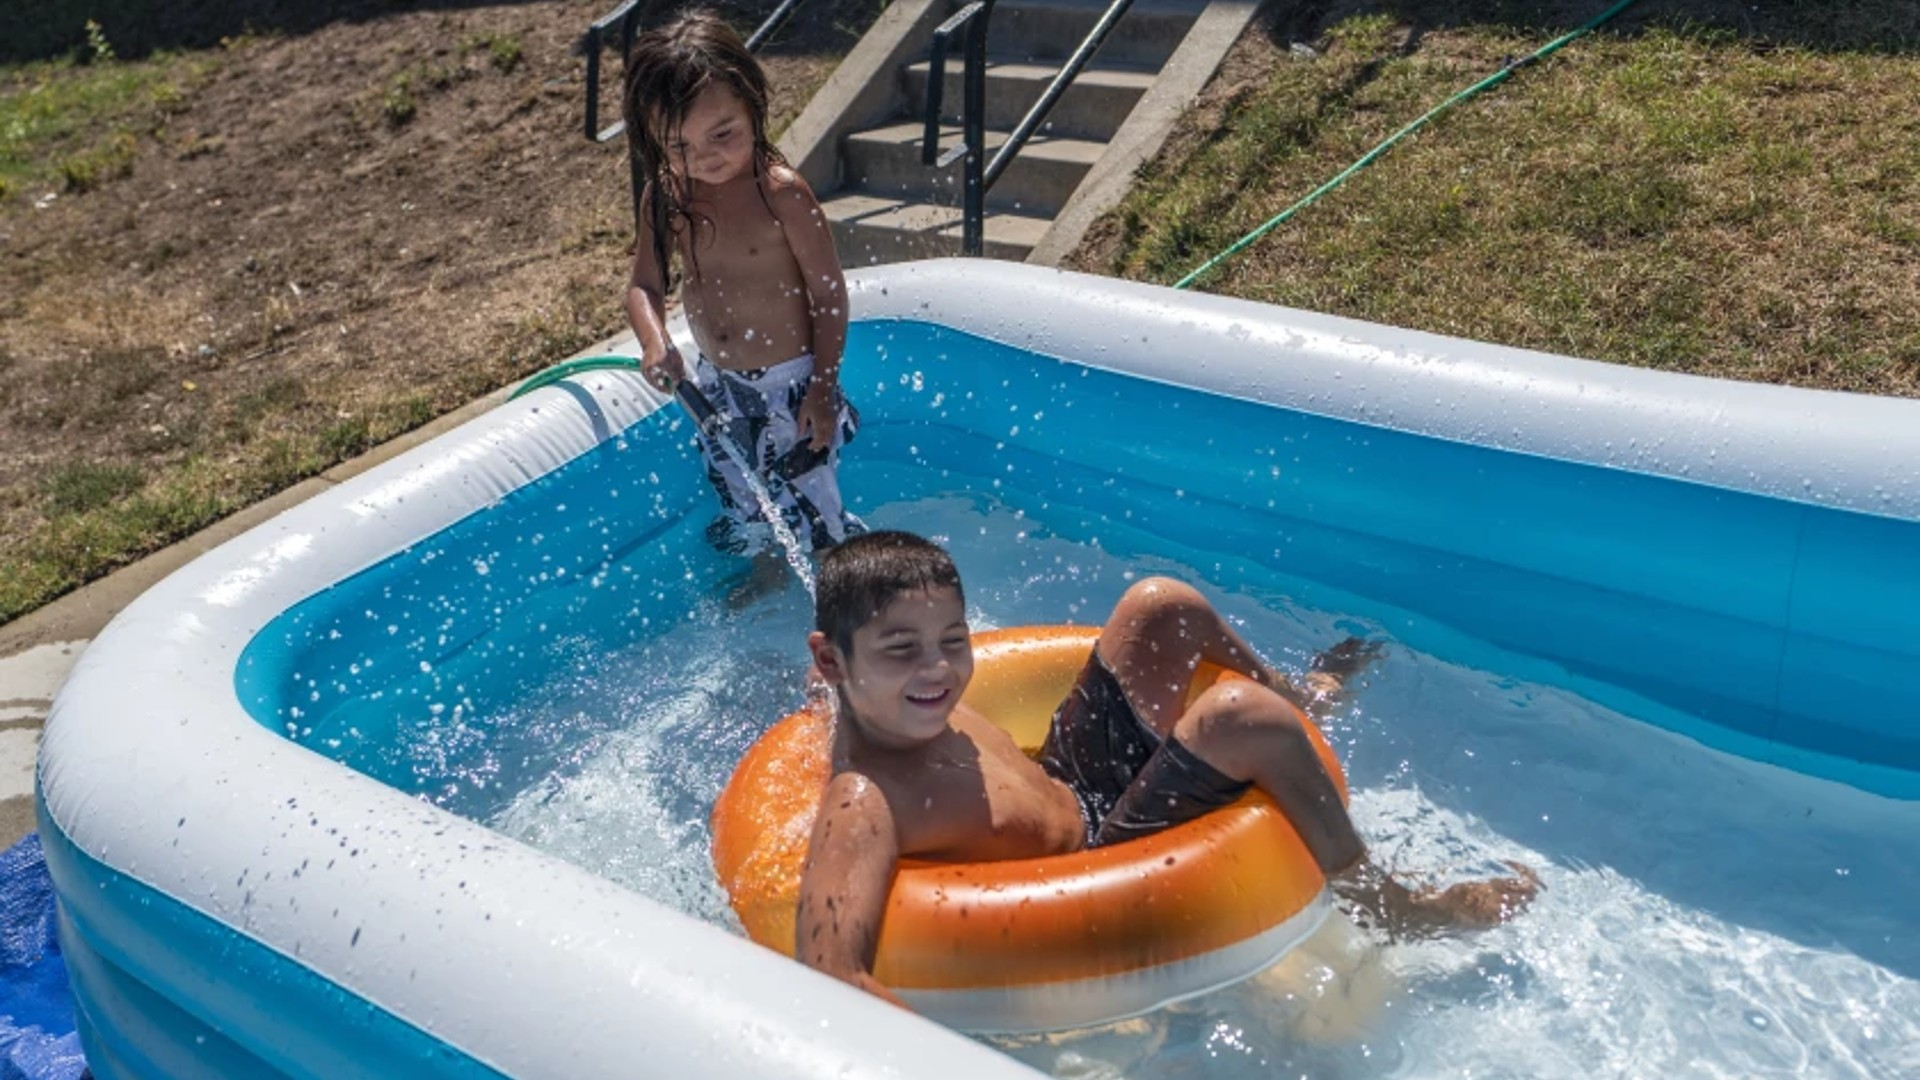 Santonio Trujillo, 3, left, and Adrian Stevens, 7, cool off while playing in a pool in San Pedro on Sept. 5. More warm weather is on tap for the Southland for the next two days.(Francine Orr / Los Angeles Times)